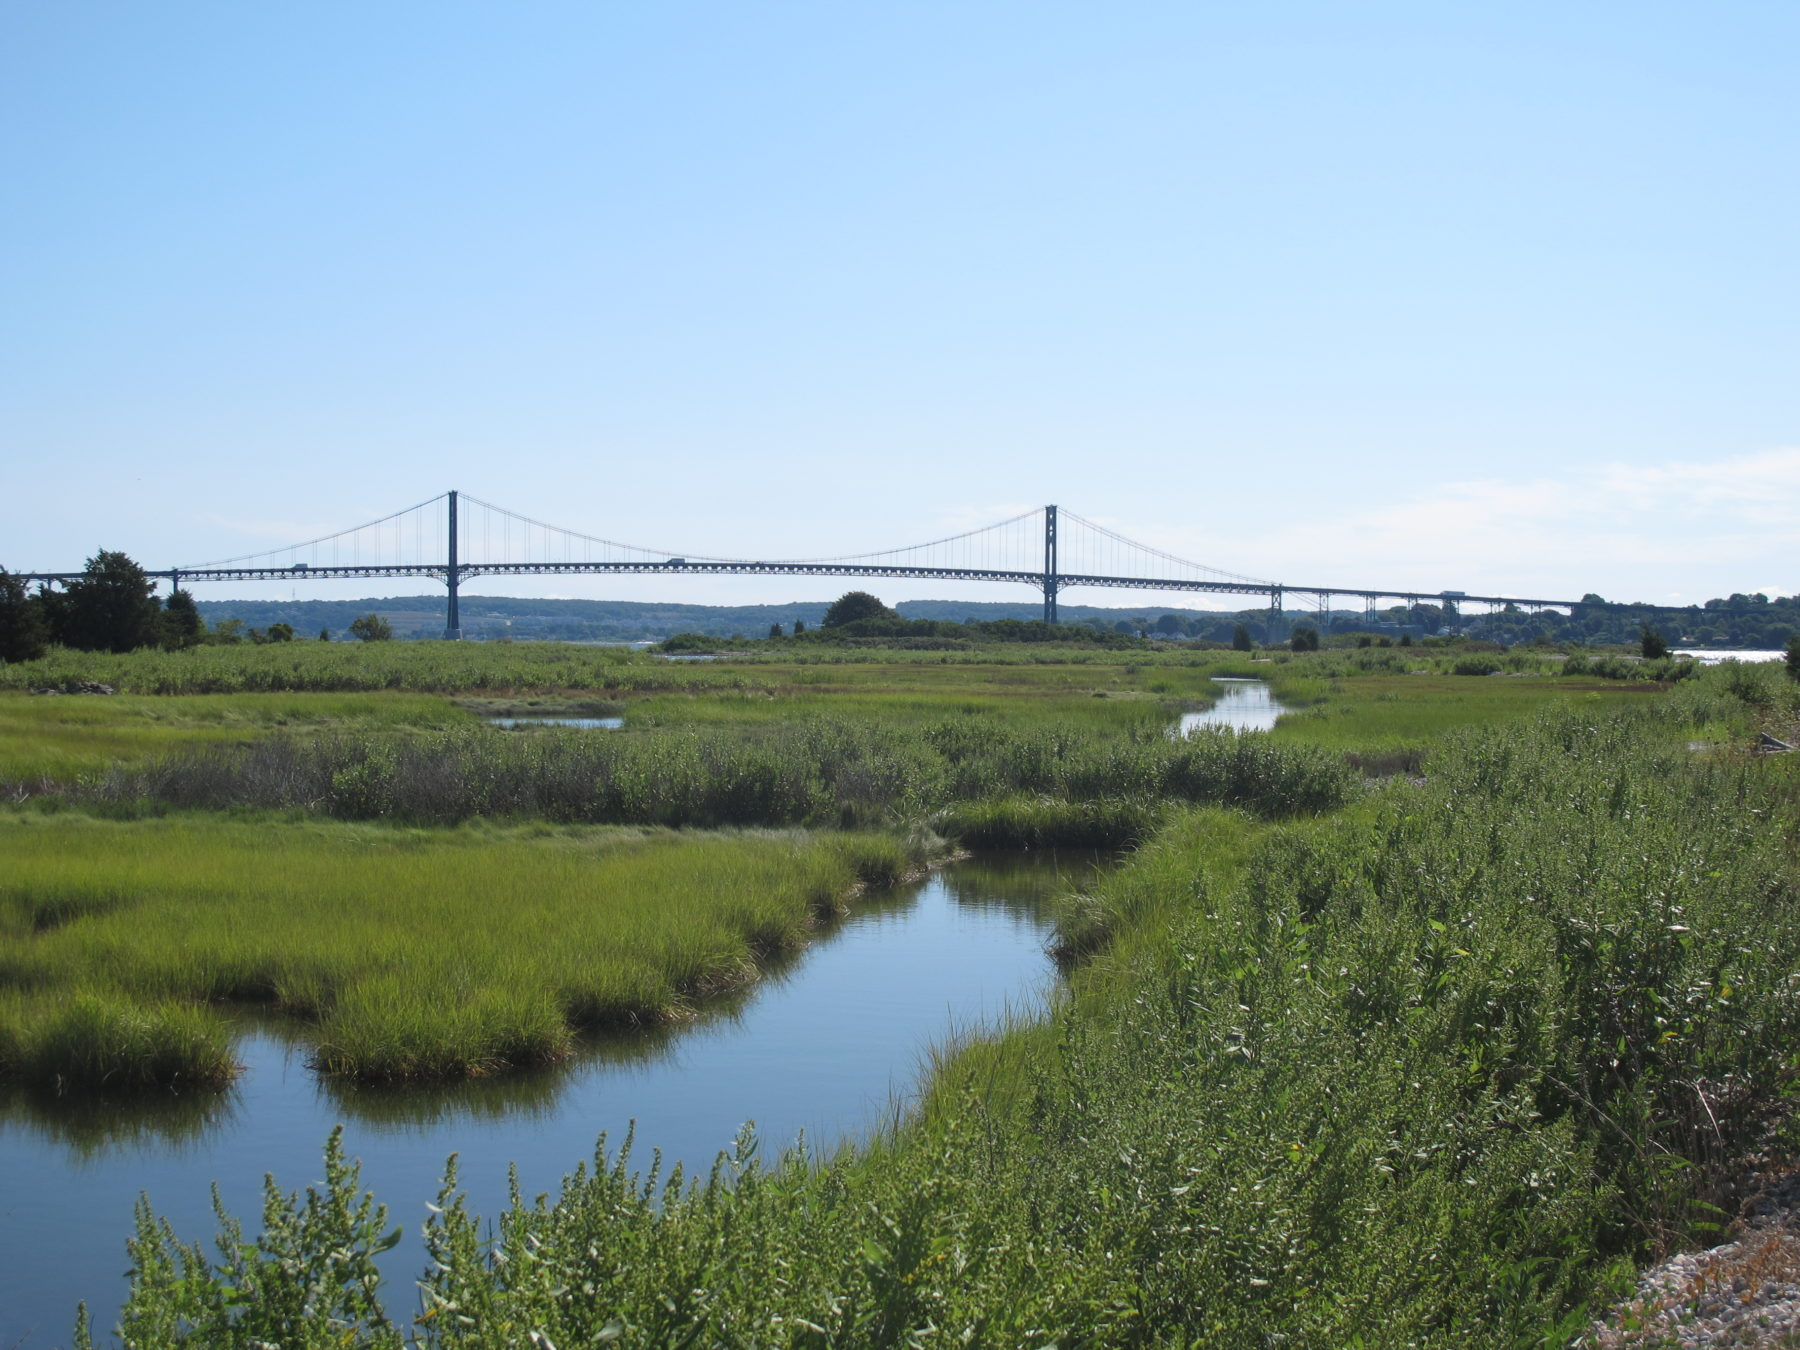 Salt marshes and other coastal buffers offer a natural barrier protecting Narragansett Bay from human activity.